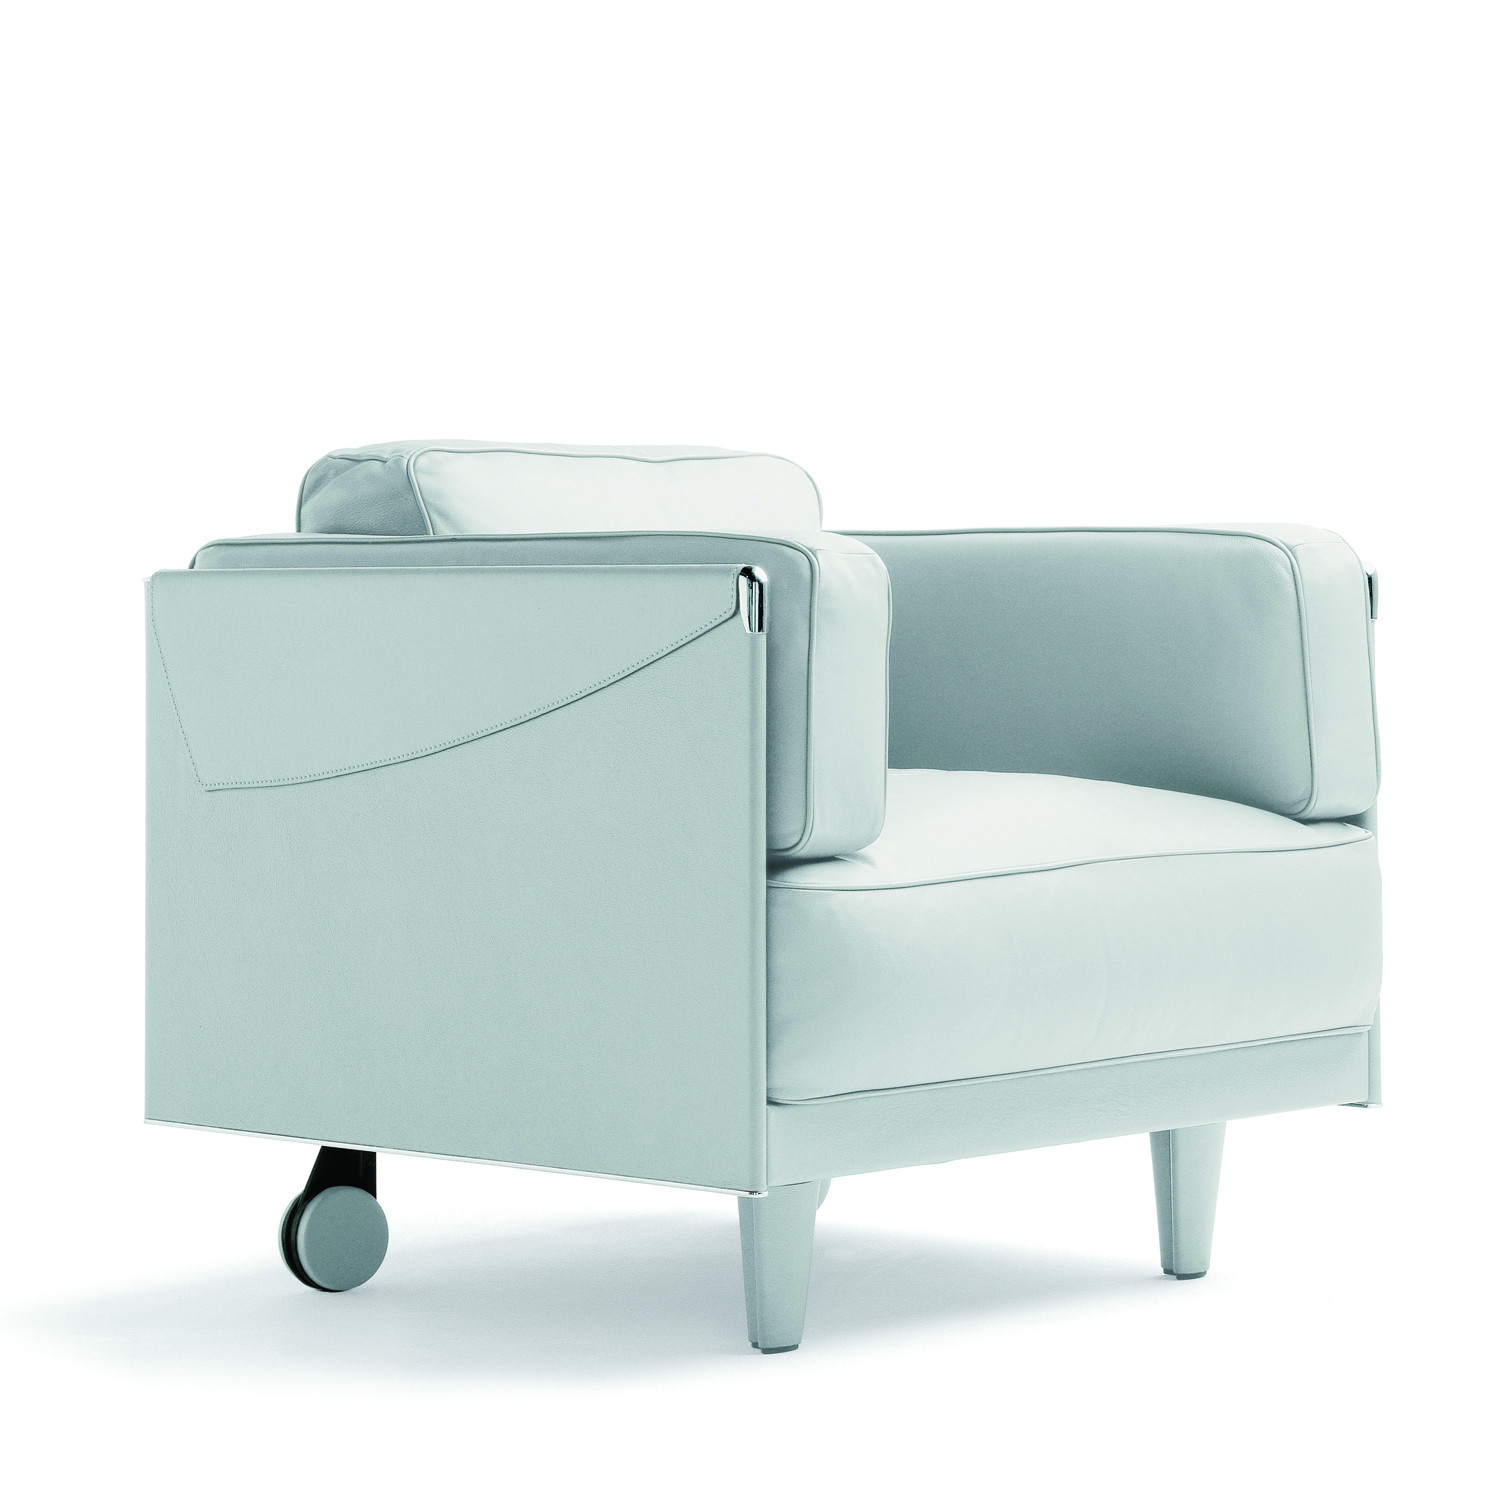 Twice Armchair by Poltrona Frau